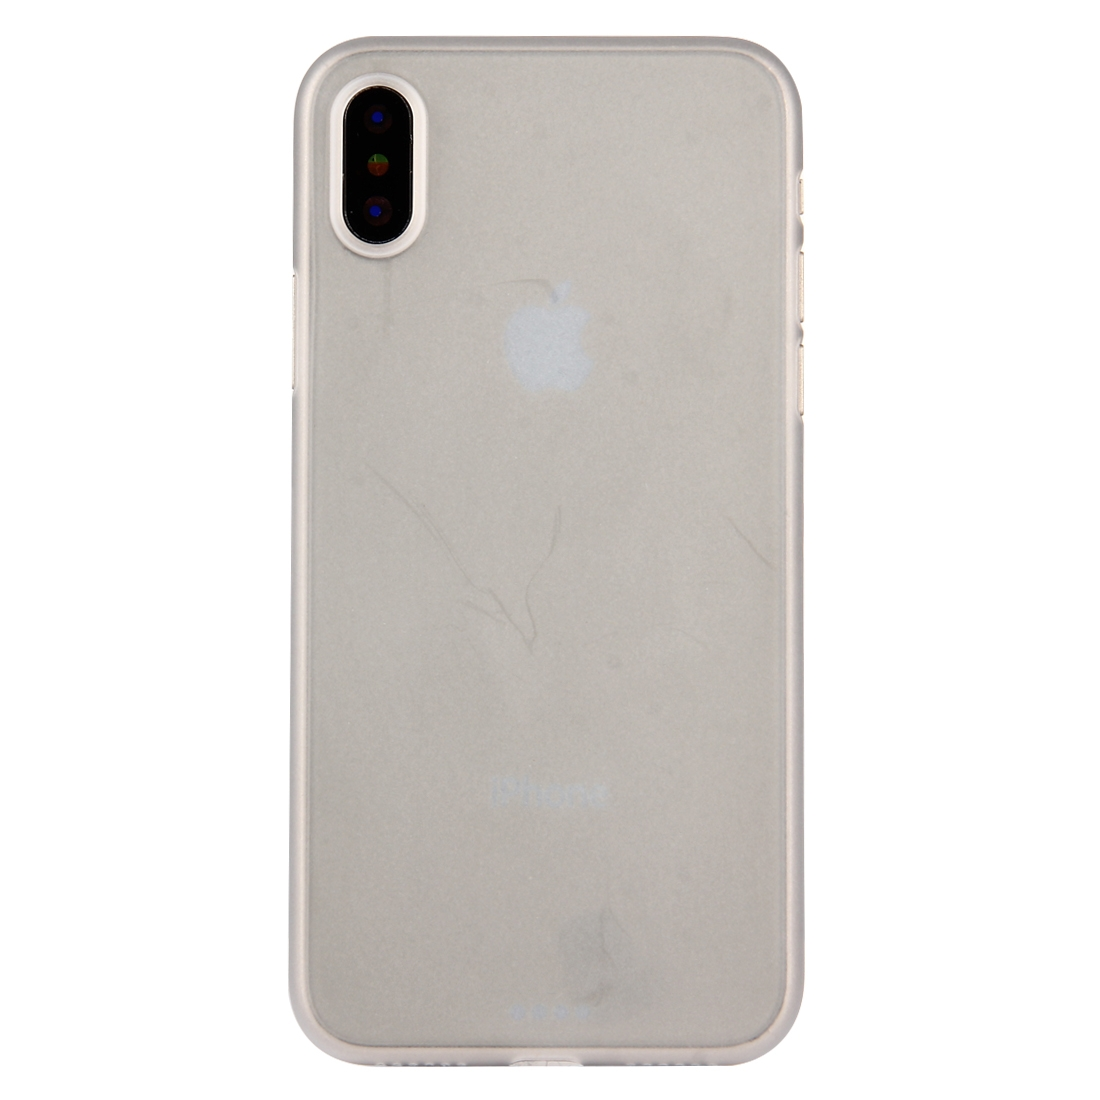 Ultra-Thin-Case-0-3mm-for-iPhone-XS-X-Super-Slim-Hard-Protective-Cover-New-Desi miniatuur 6